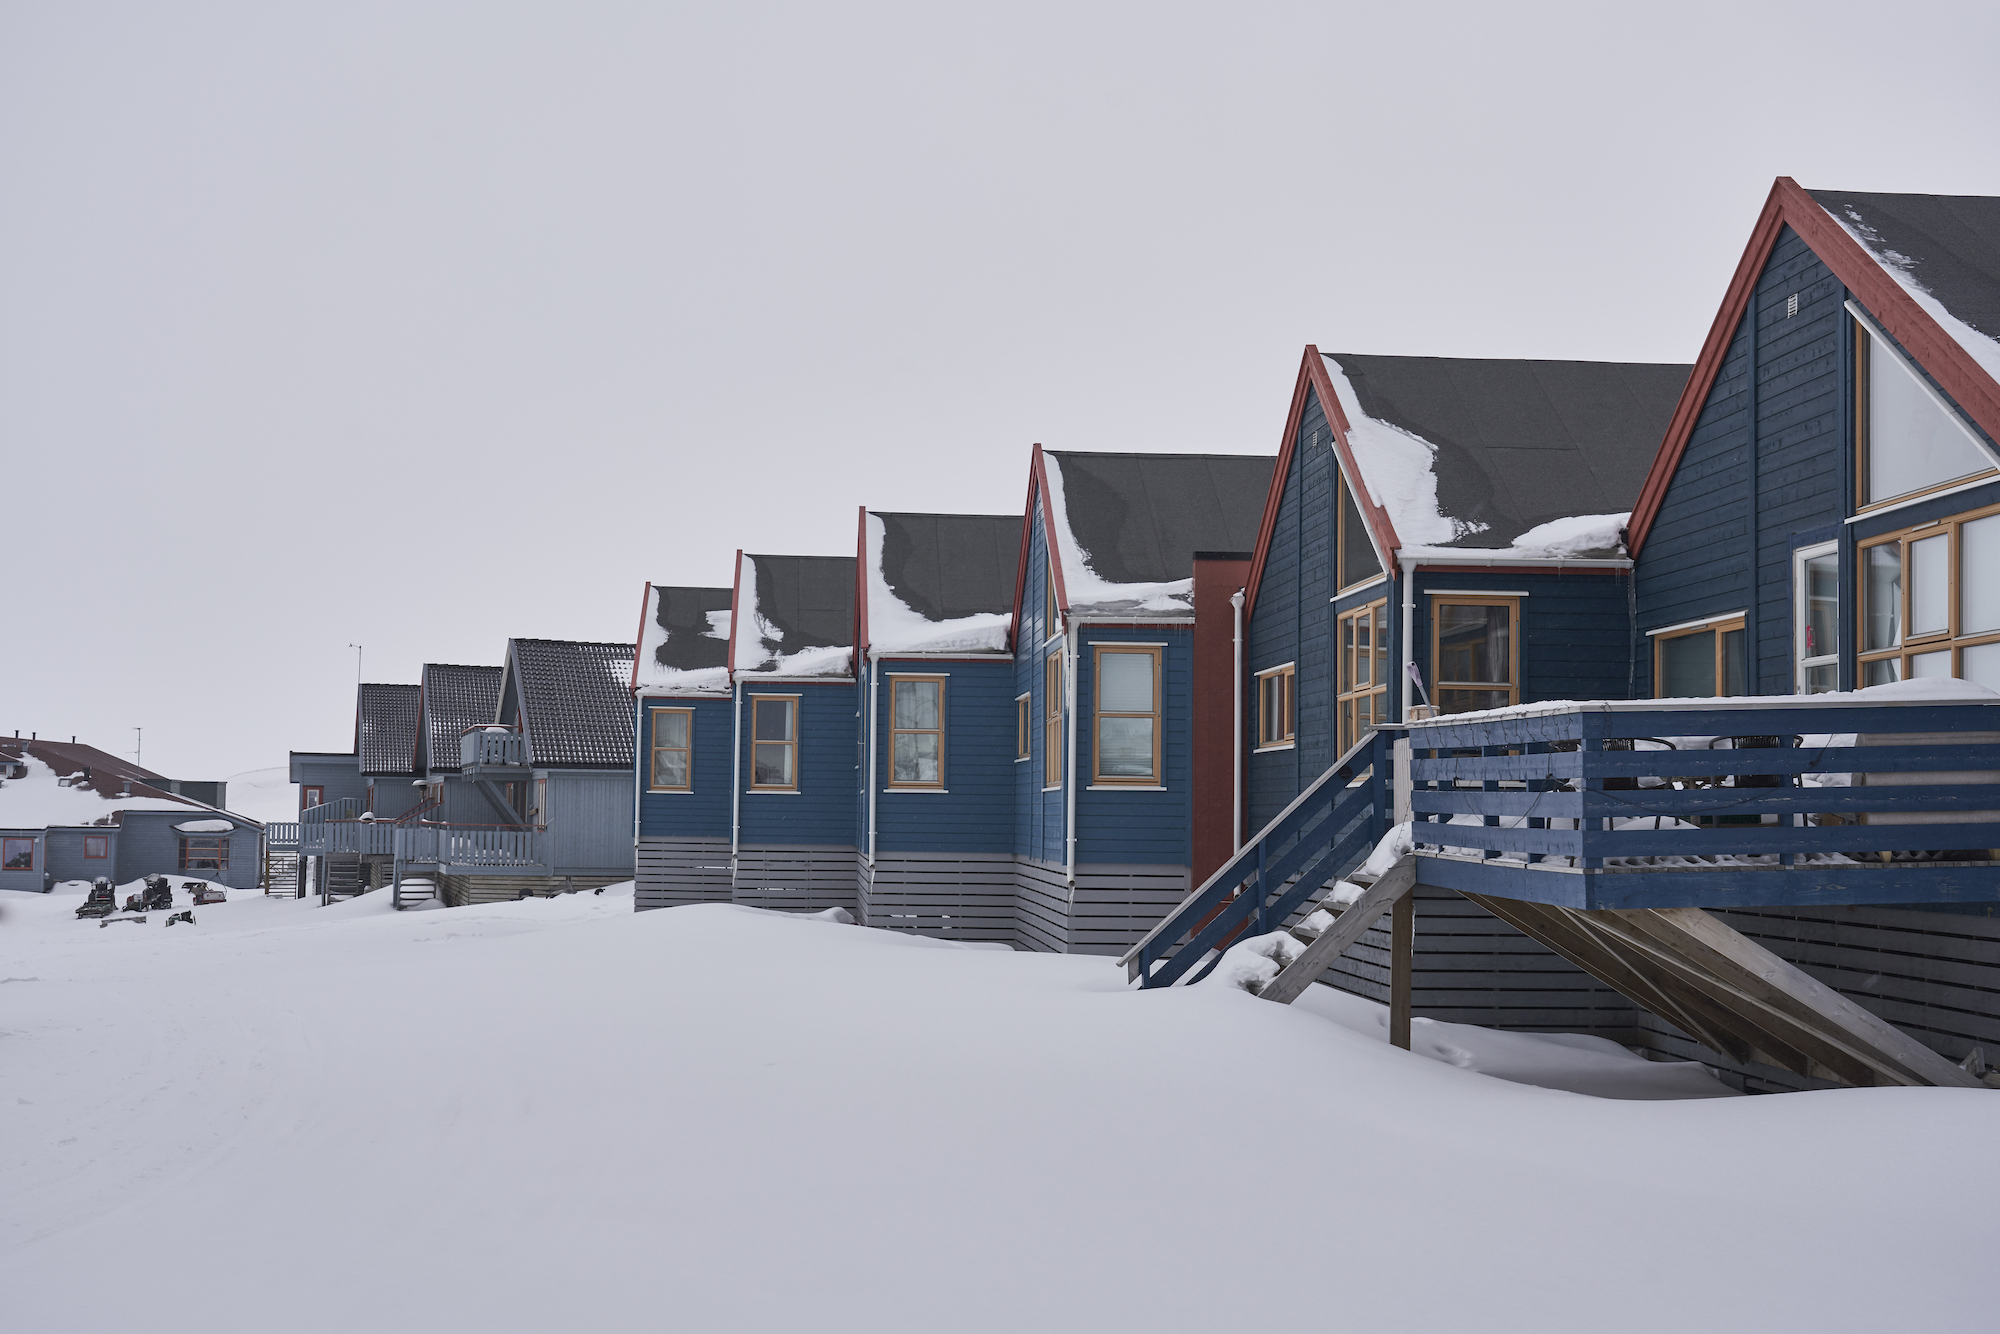 Wonderland Parajumpers stories Svalbard Norway houses